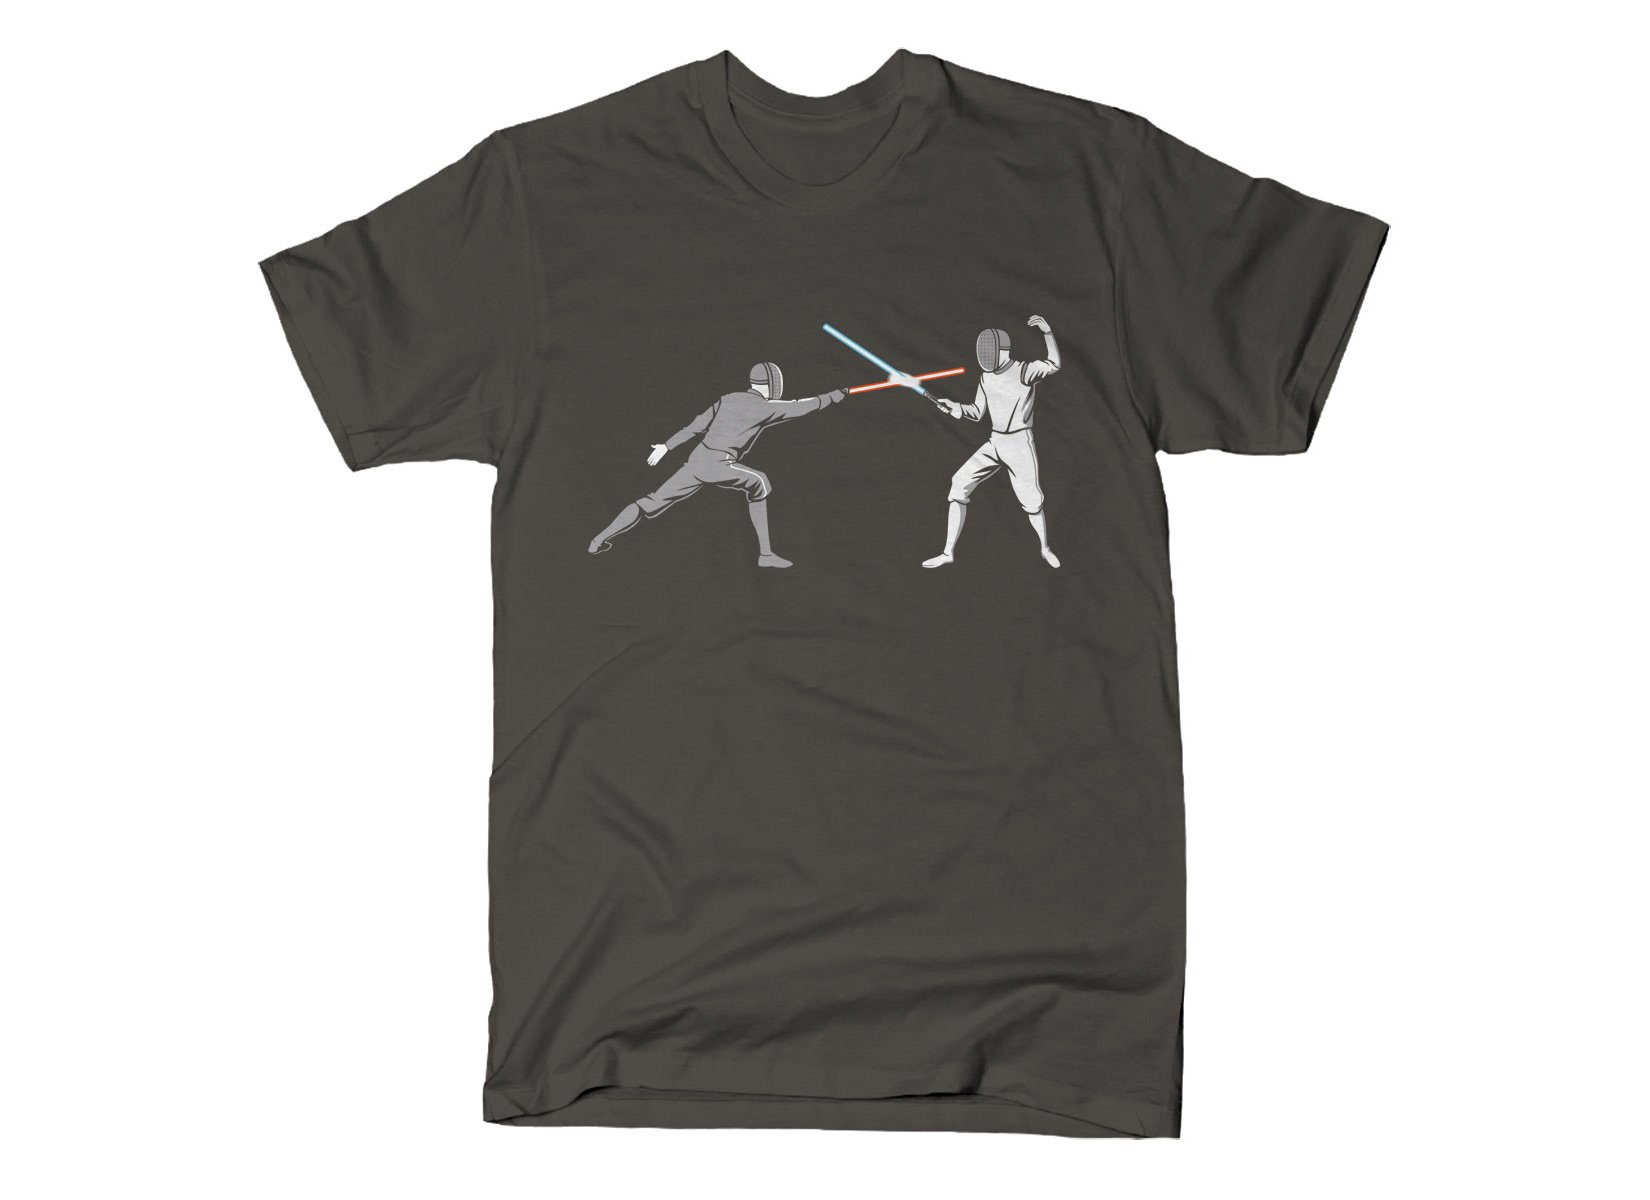 Light Fencing on Mens T-Shirt